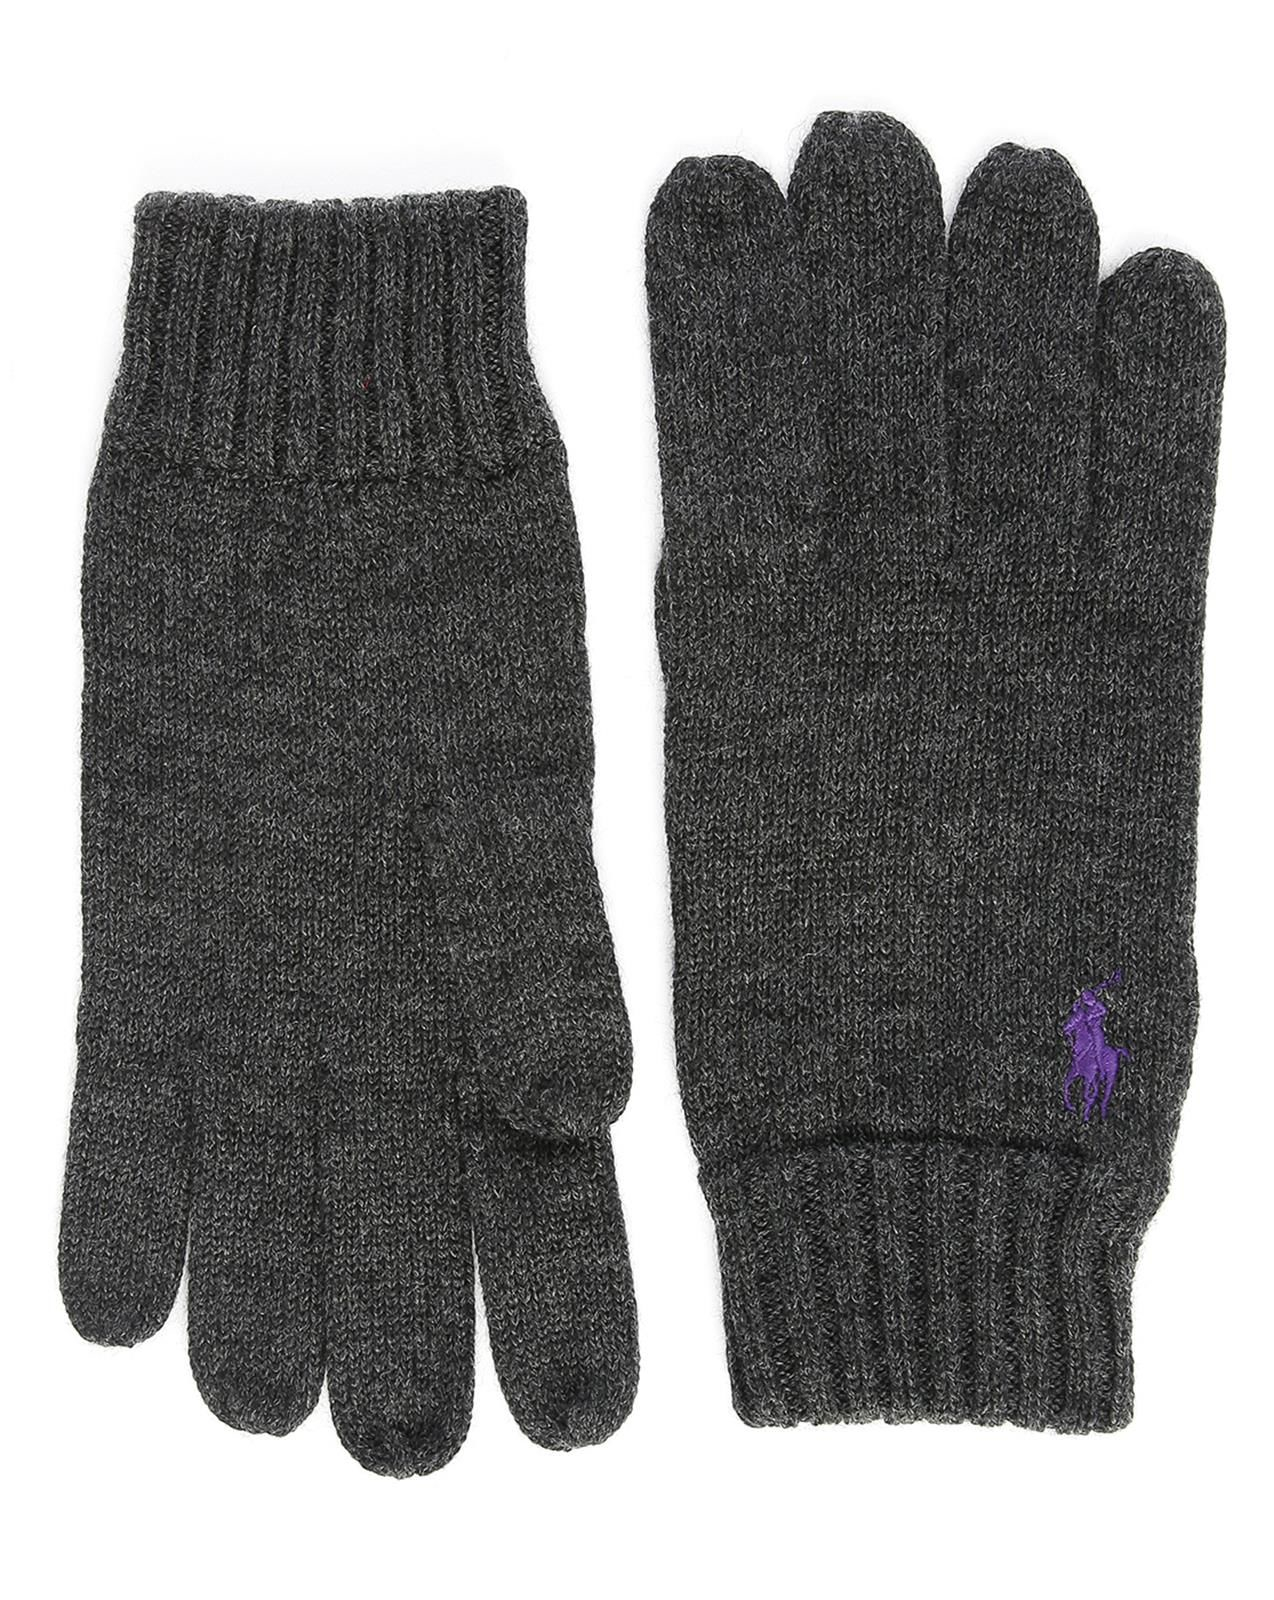 polo ralph lauren charcoal merino wool gloves in gray for men grey lyst. Black Bedroom Furniture Sets. Home Design Ideas